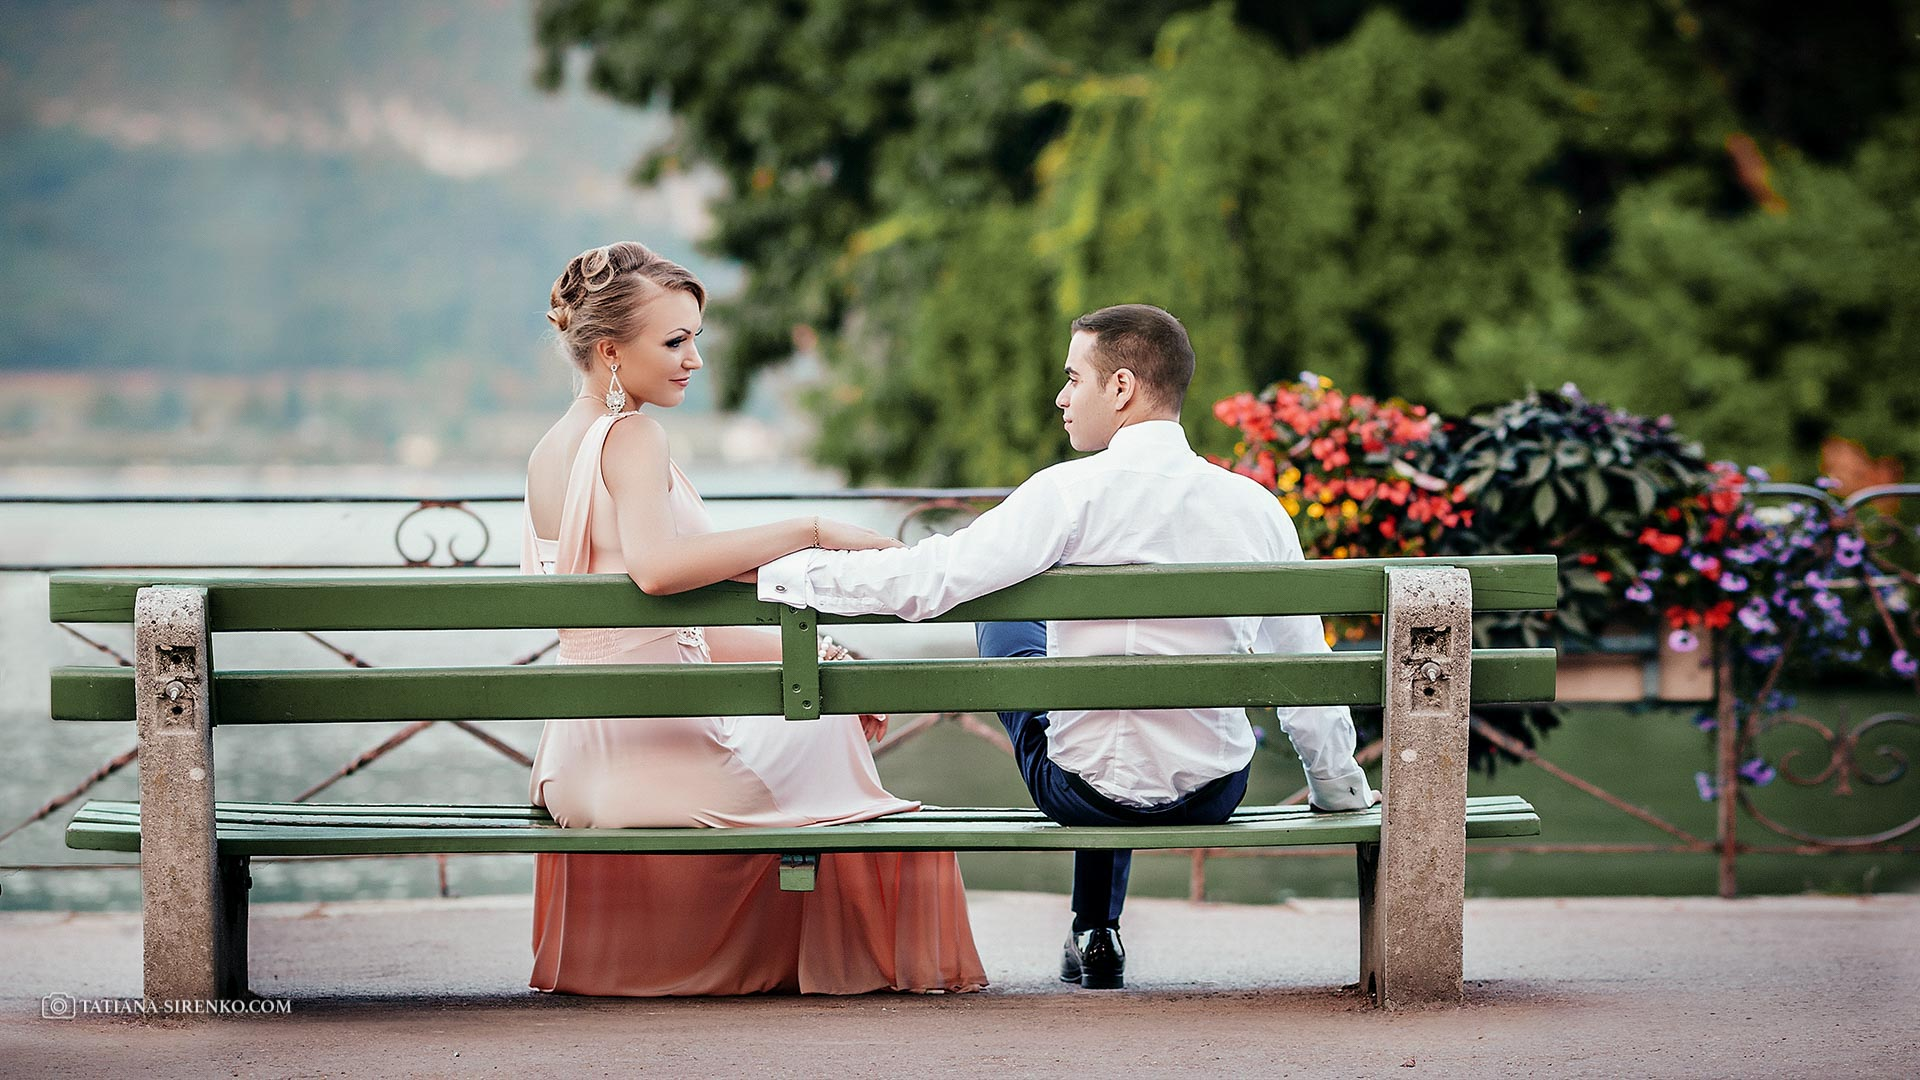 Wedding photography in Switzerland